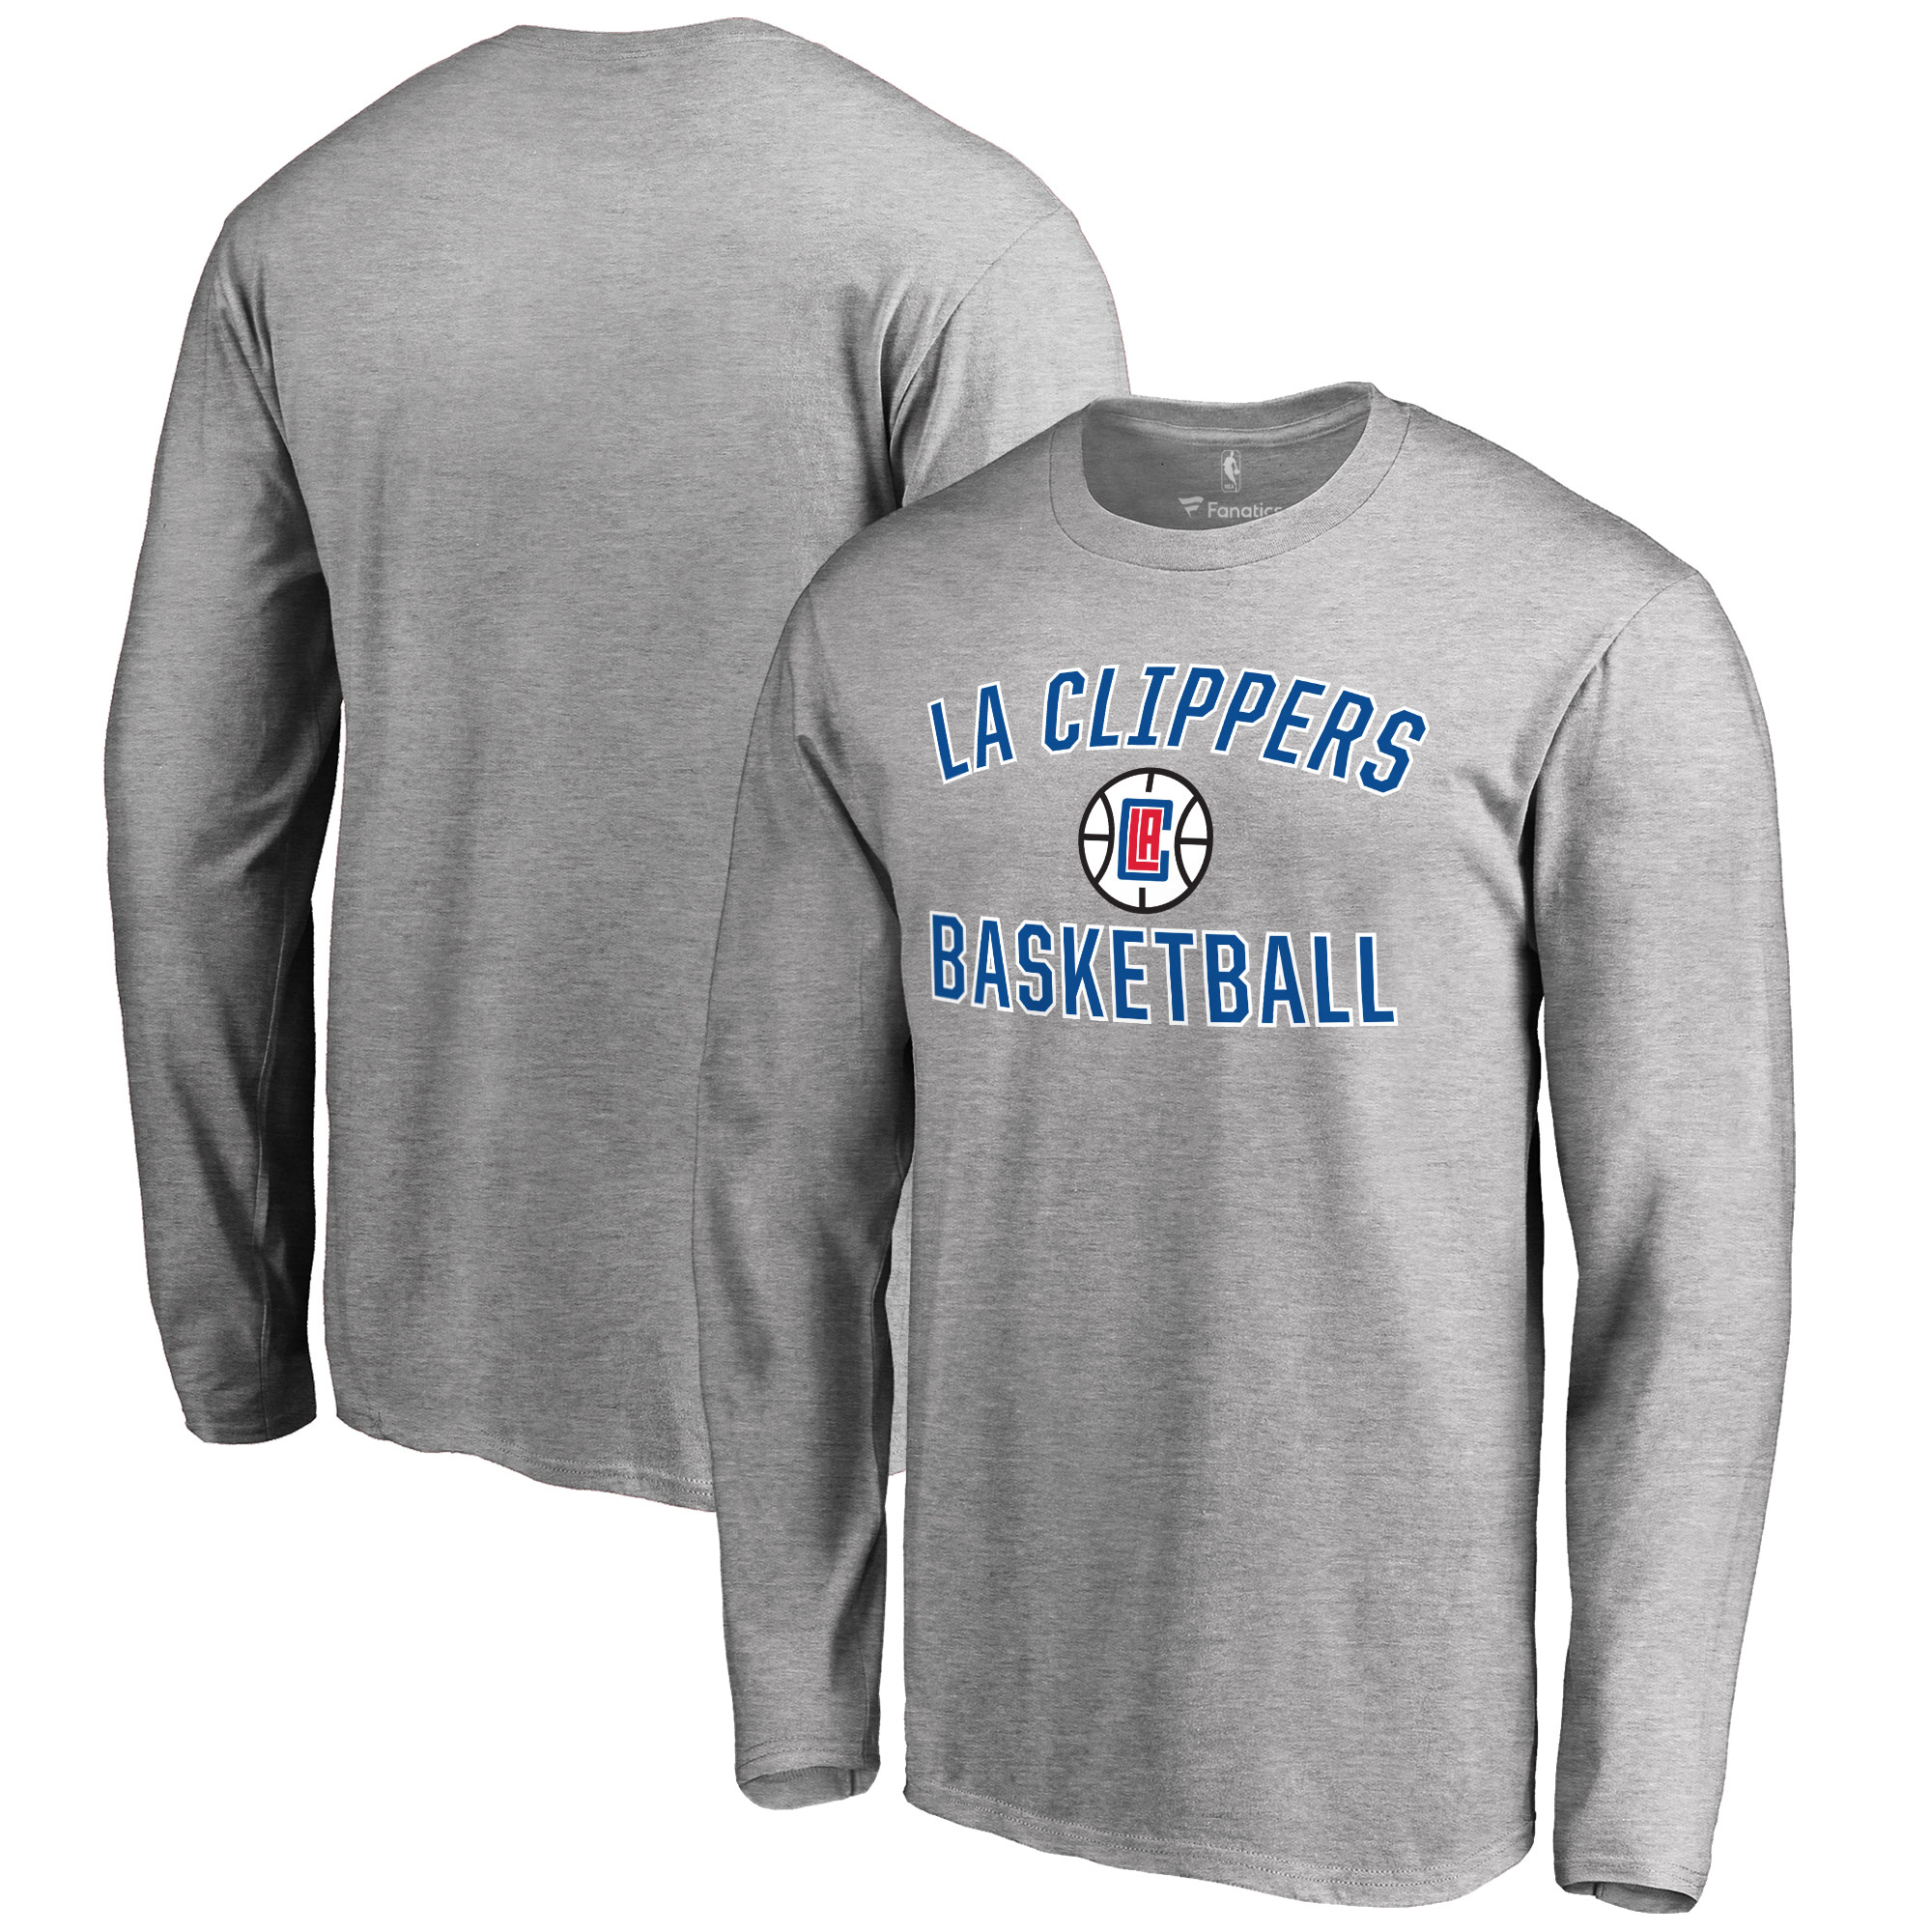 LA Clippers Victory Arch Long Sleeve T-Shirt - Gray